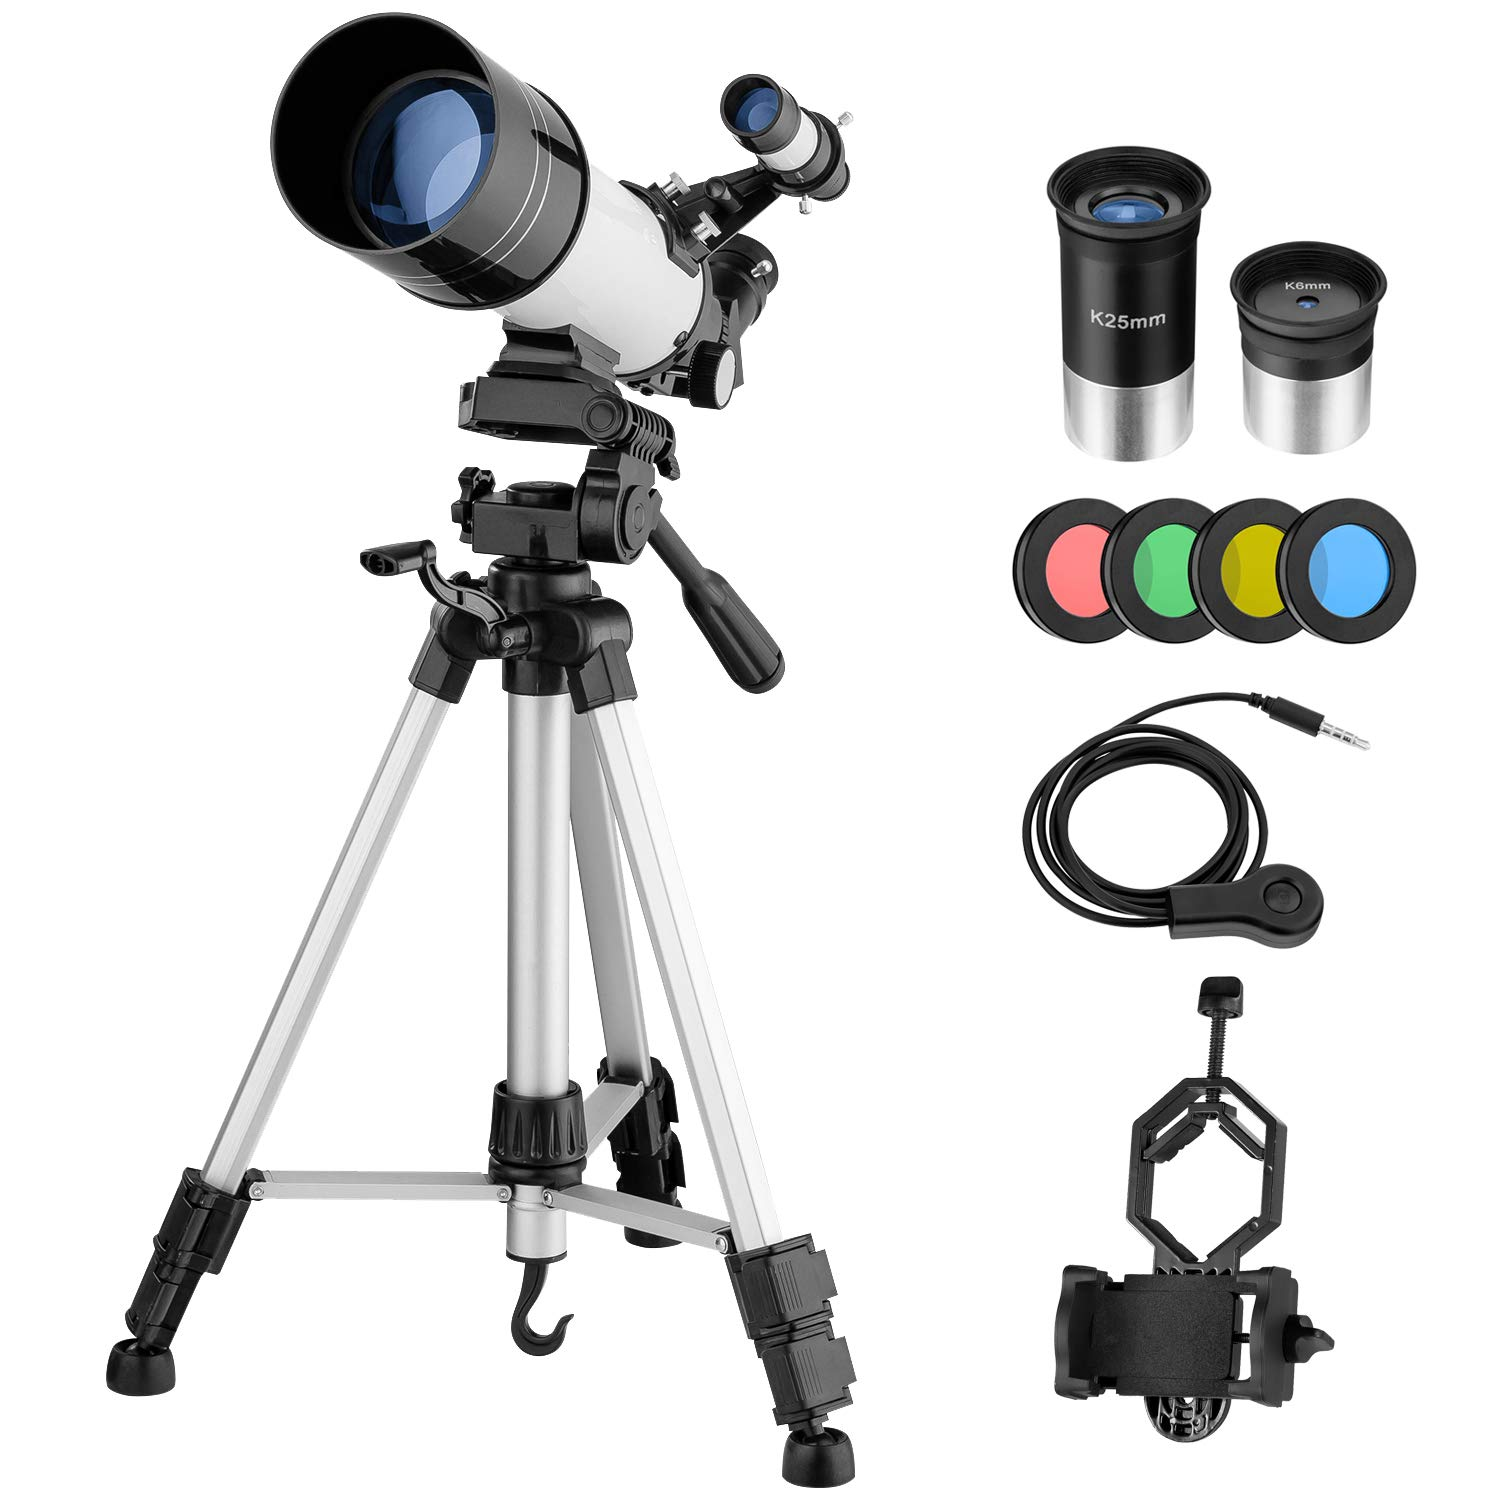 MAXLAPTER Telescope for Kids Adults Astronomy Beginners, 70mm Aperture Refractor Telescope for Astronomy, Portable Travel Telescope with Tripod, Smartphone Adapter, Two Eyepieces, Backpack